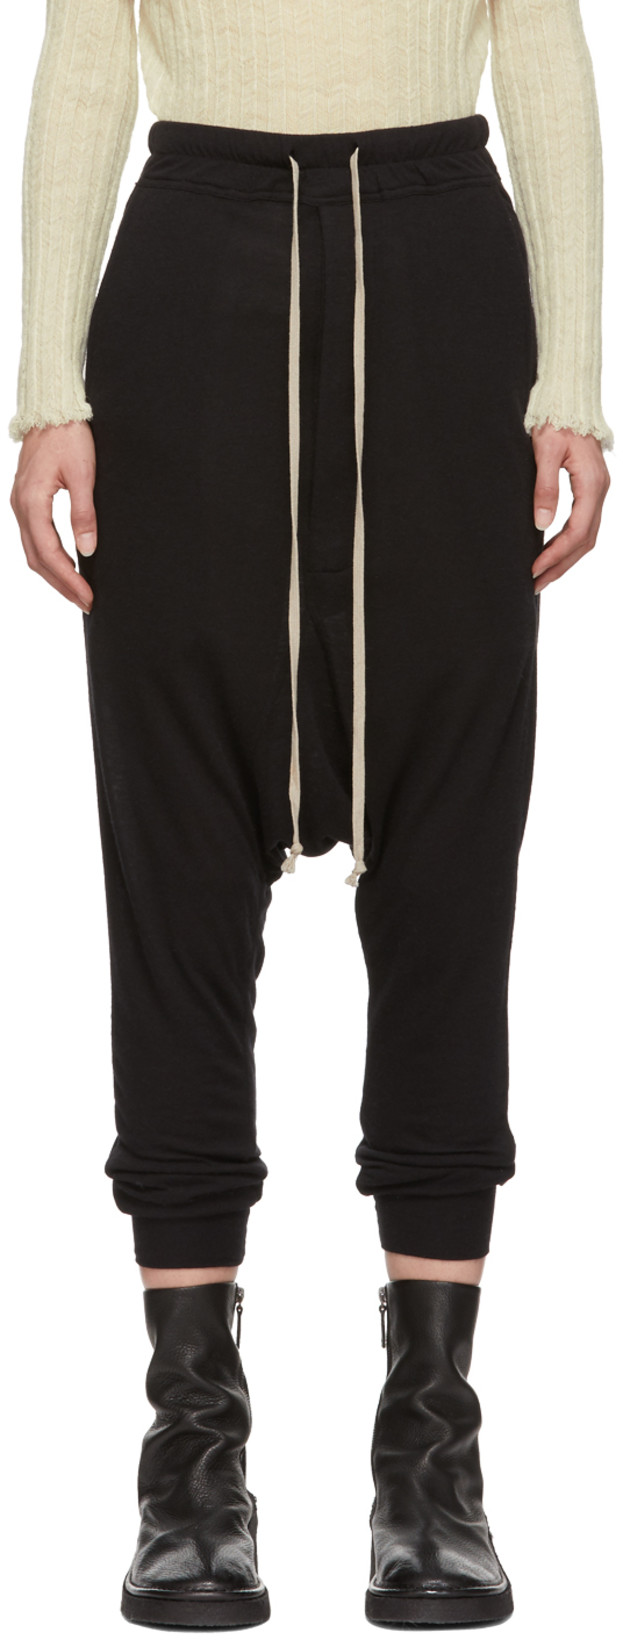 RICK OWENS - Black Heavy Jersey Lounge Pants$367 USD